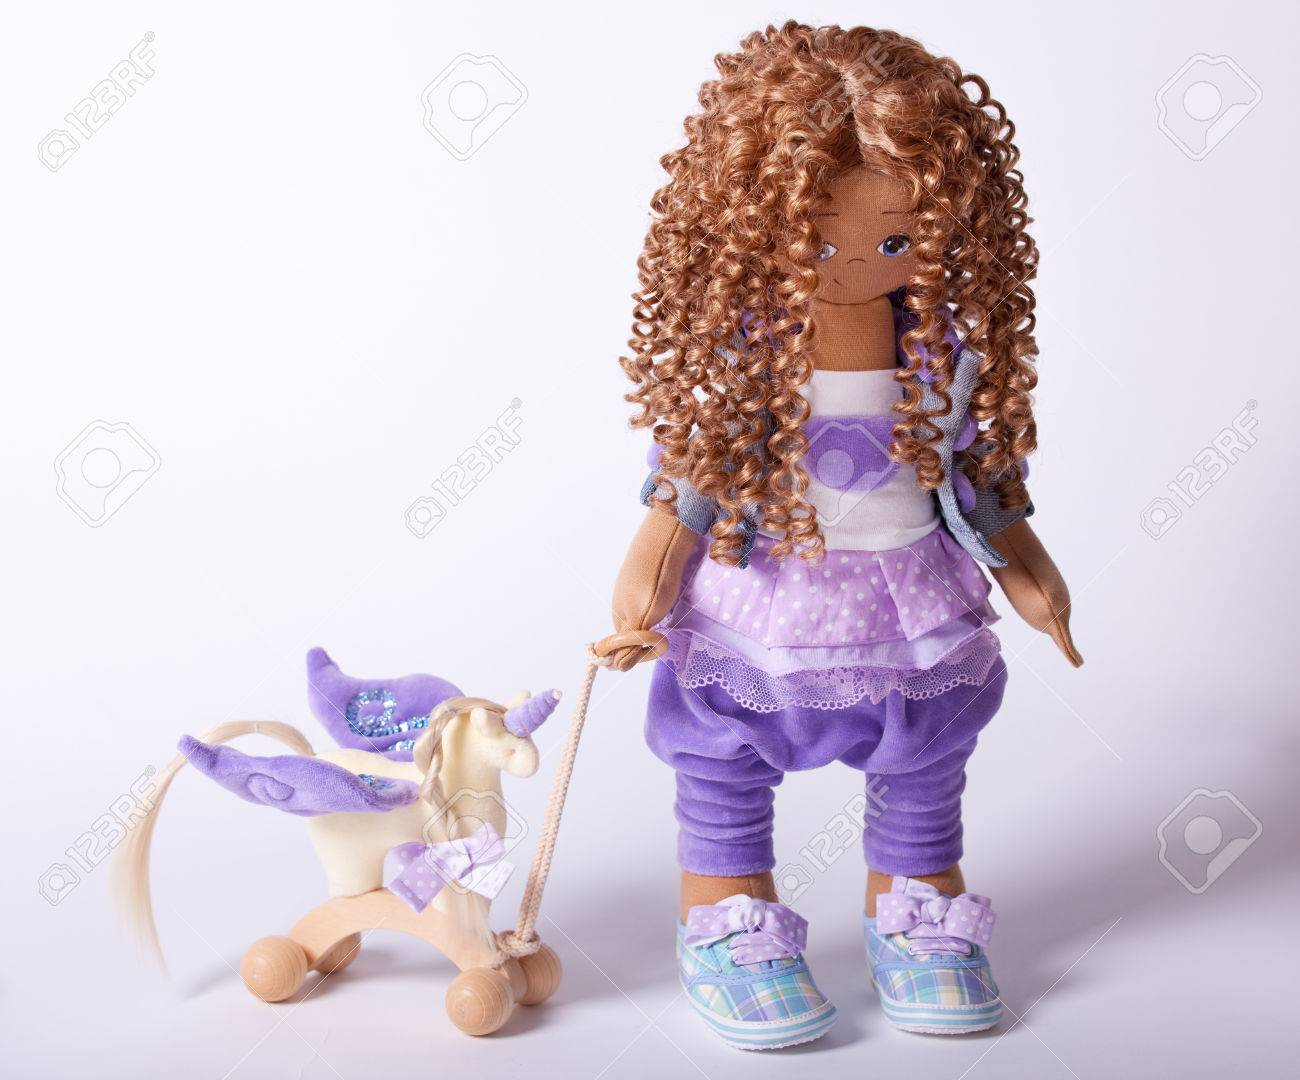 Doll. Handmade Stock Photo - 27299012